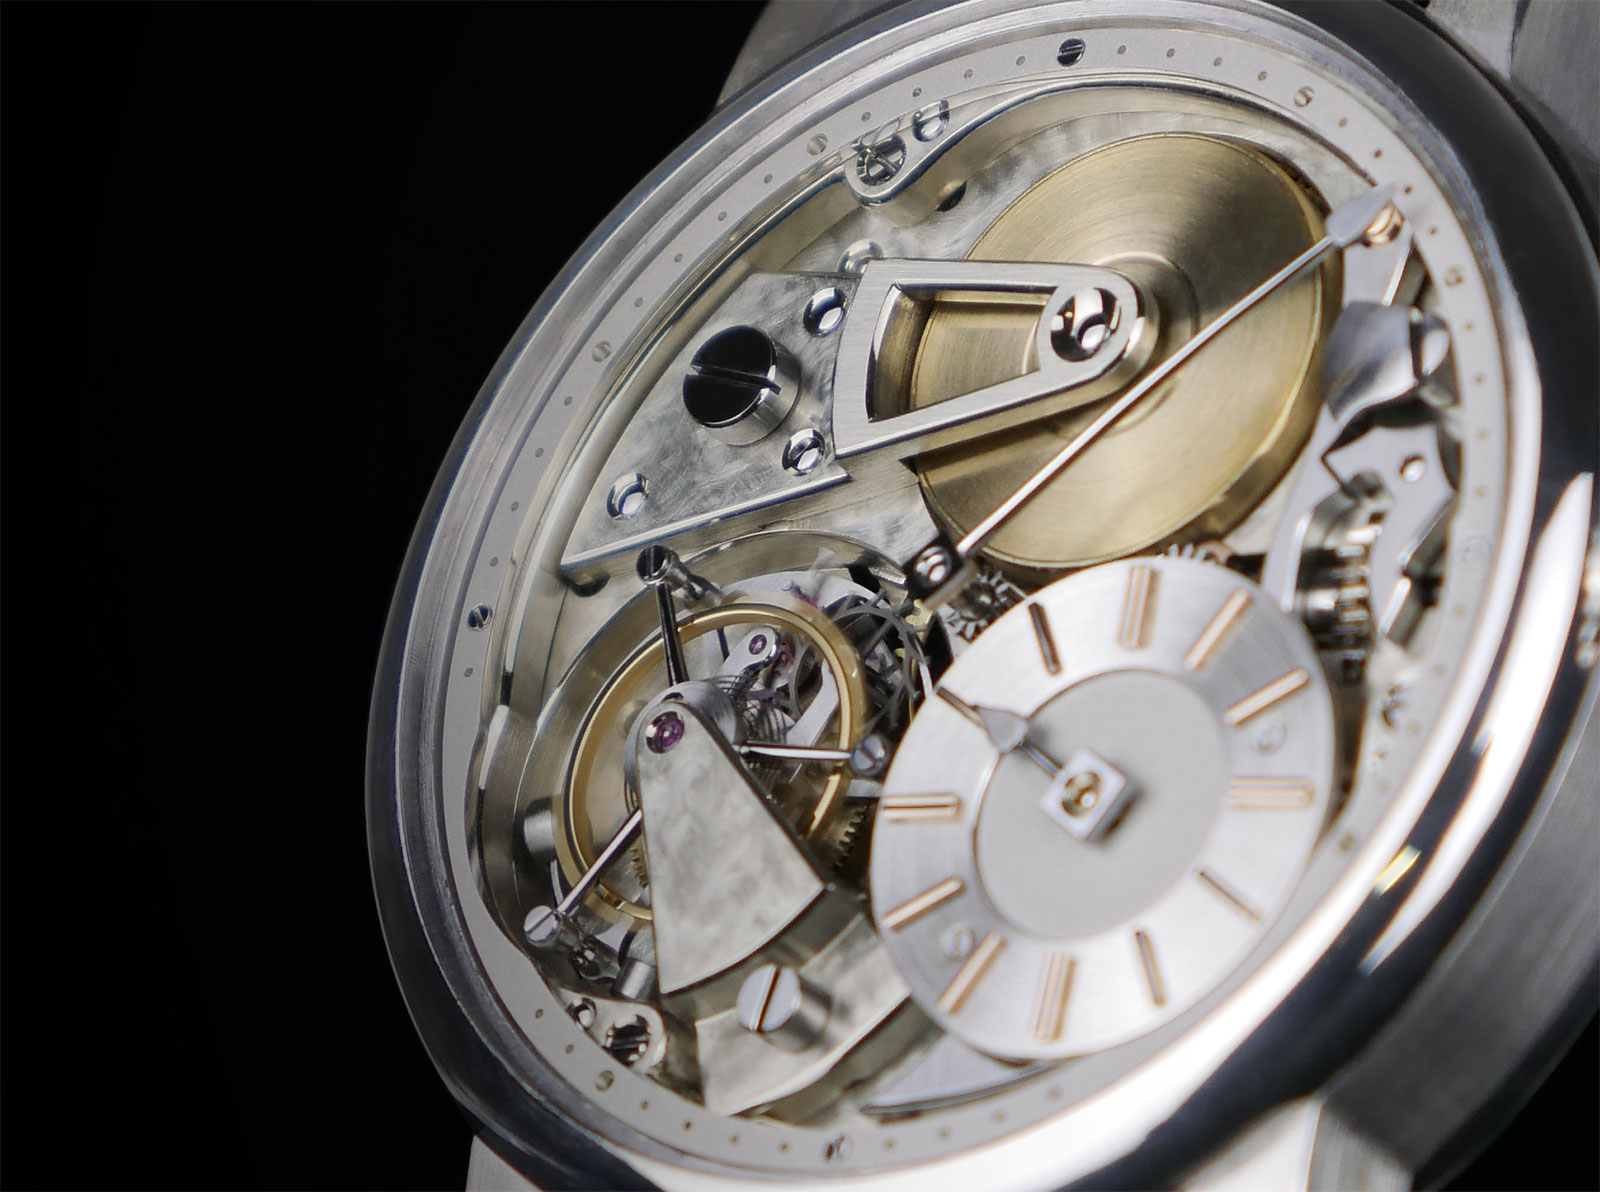 theo auffret tourbillon a paris watch 4